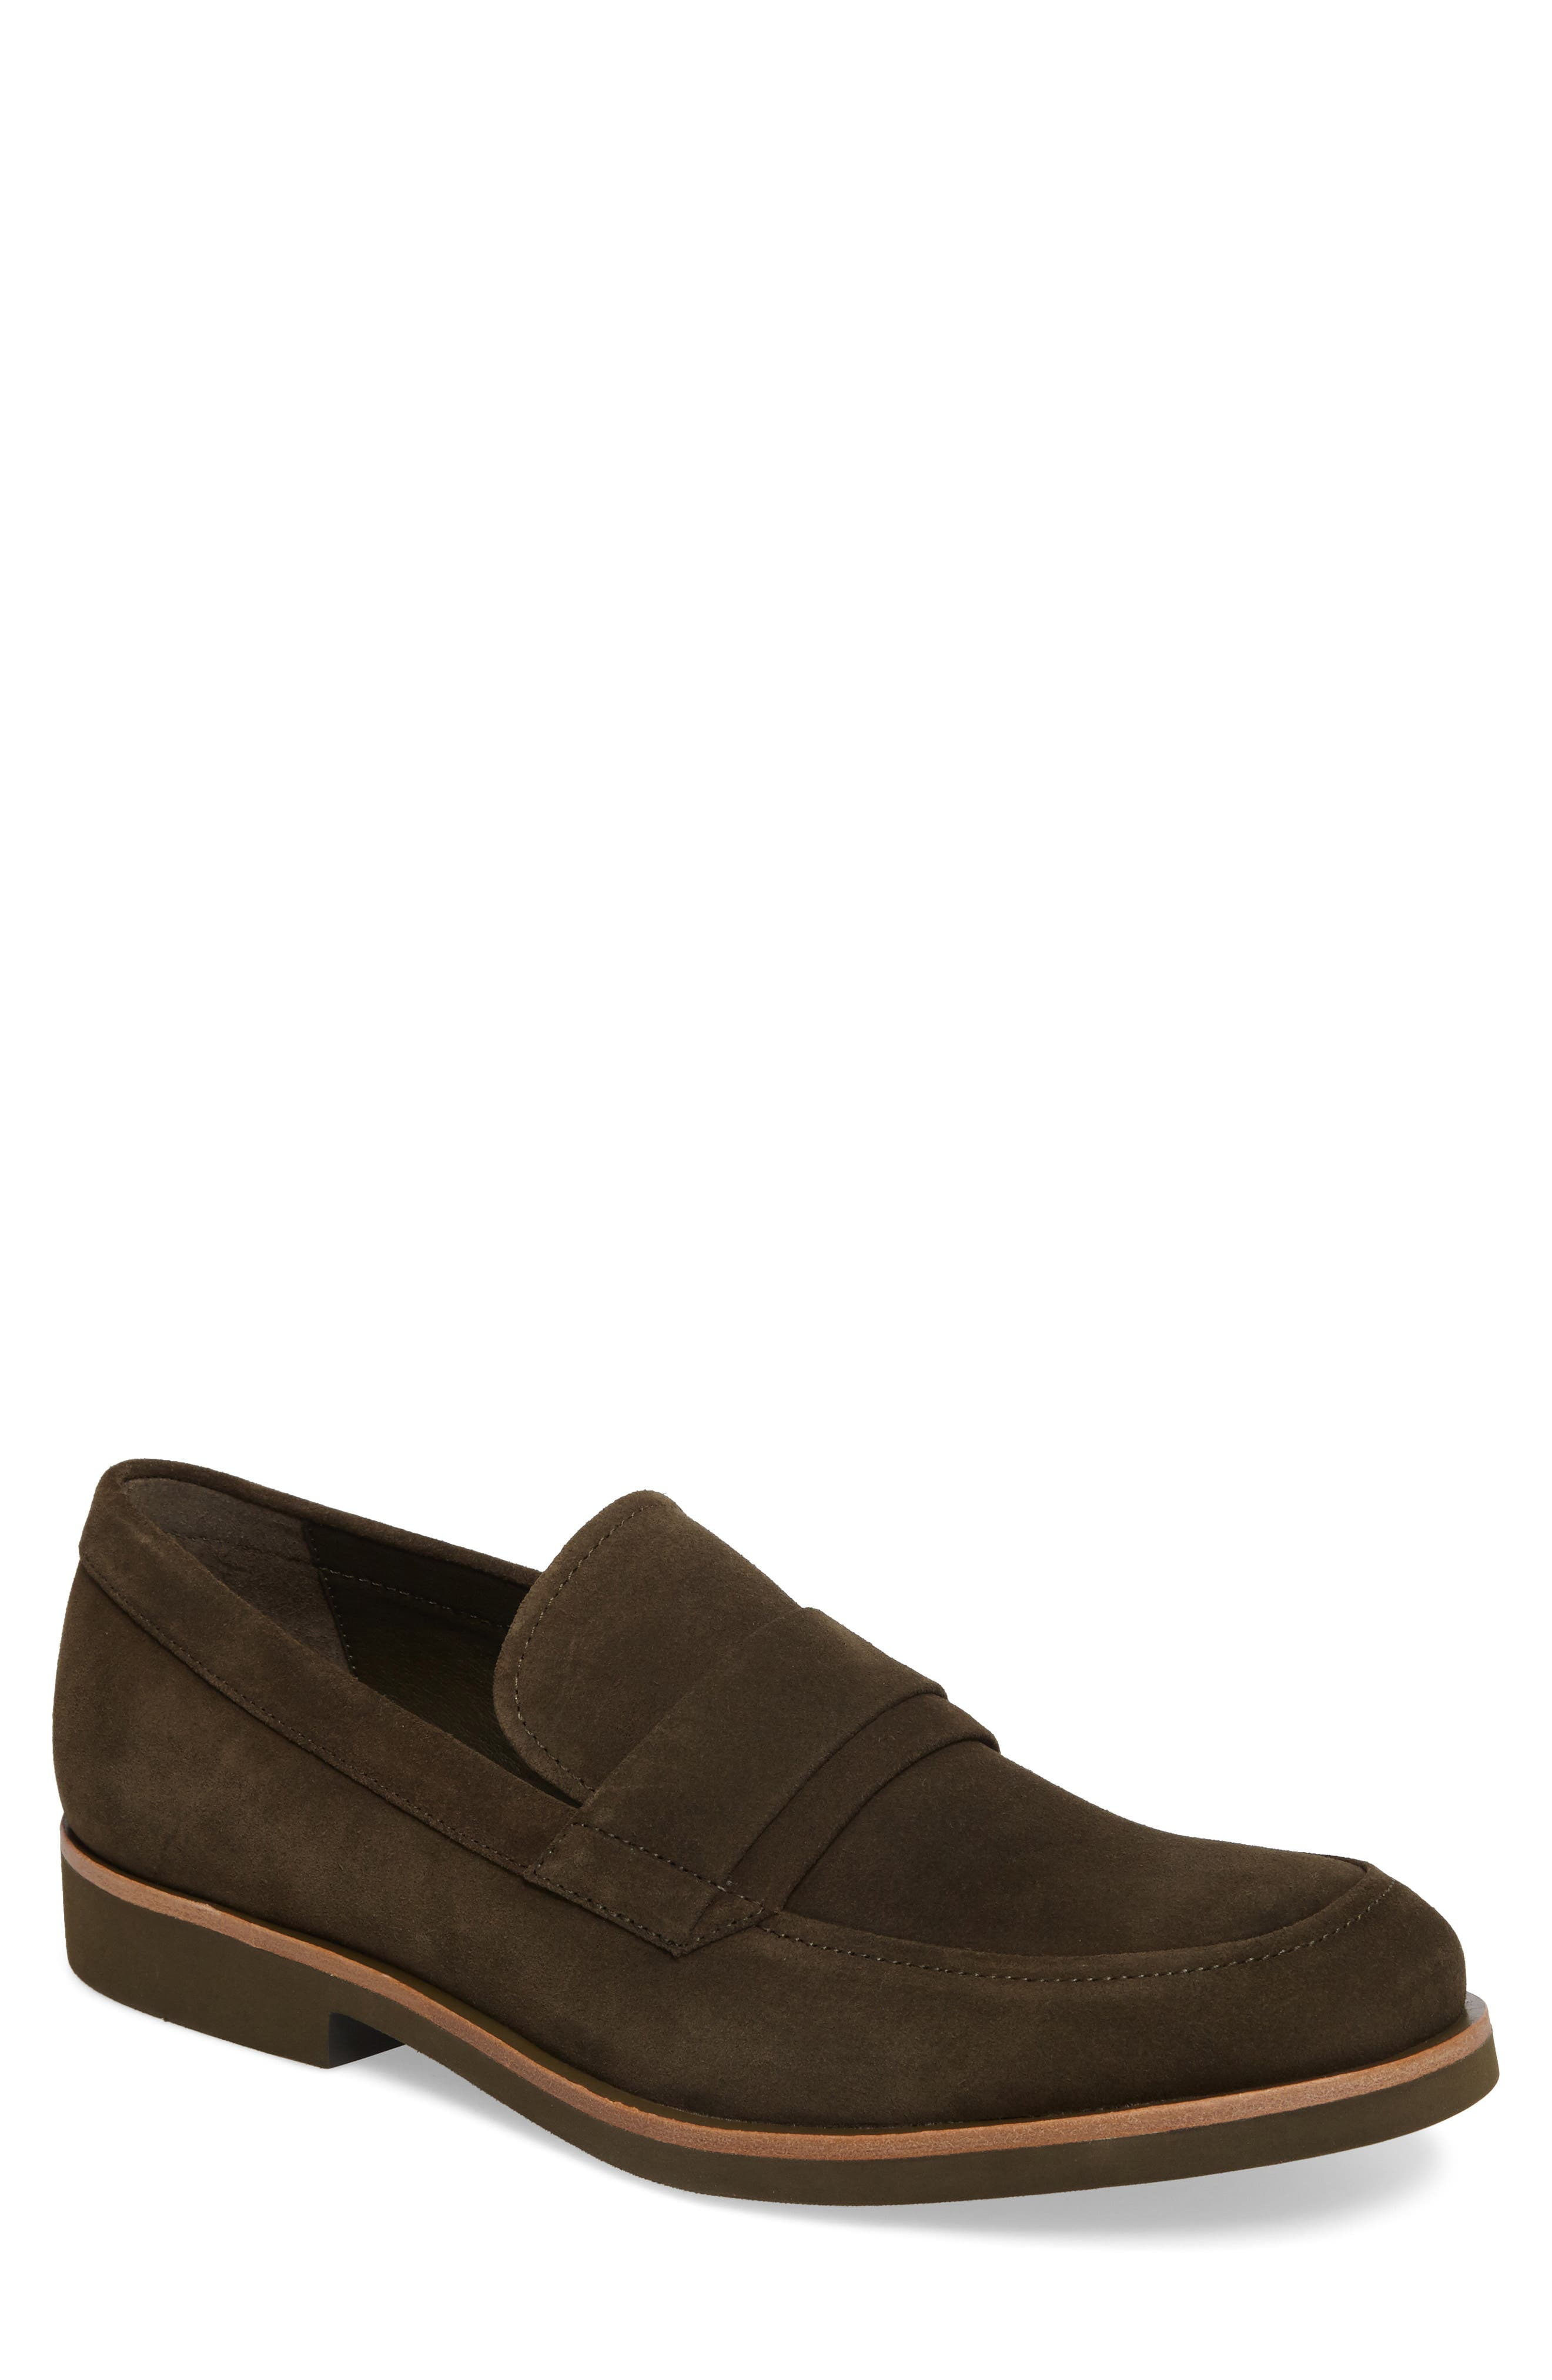 Forbes Loafer,                             Main thumbnail 2, color,